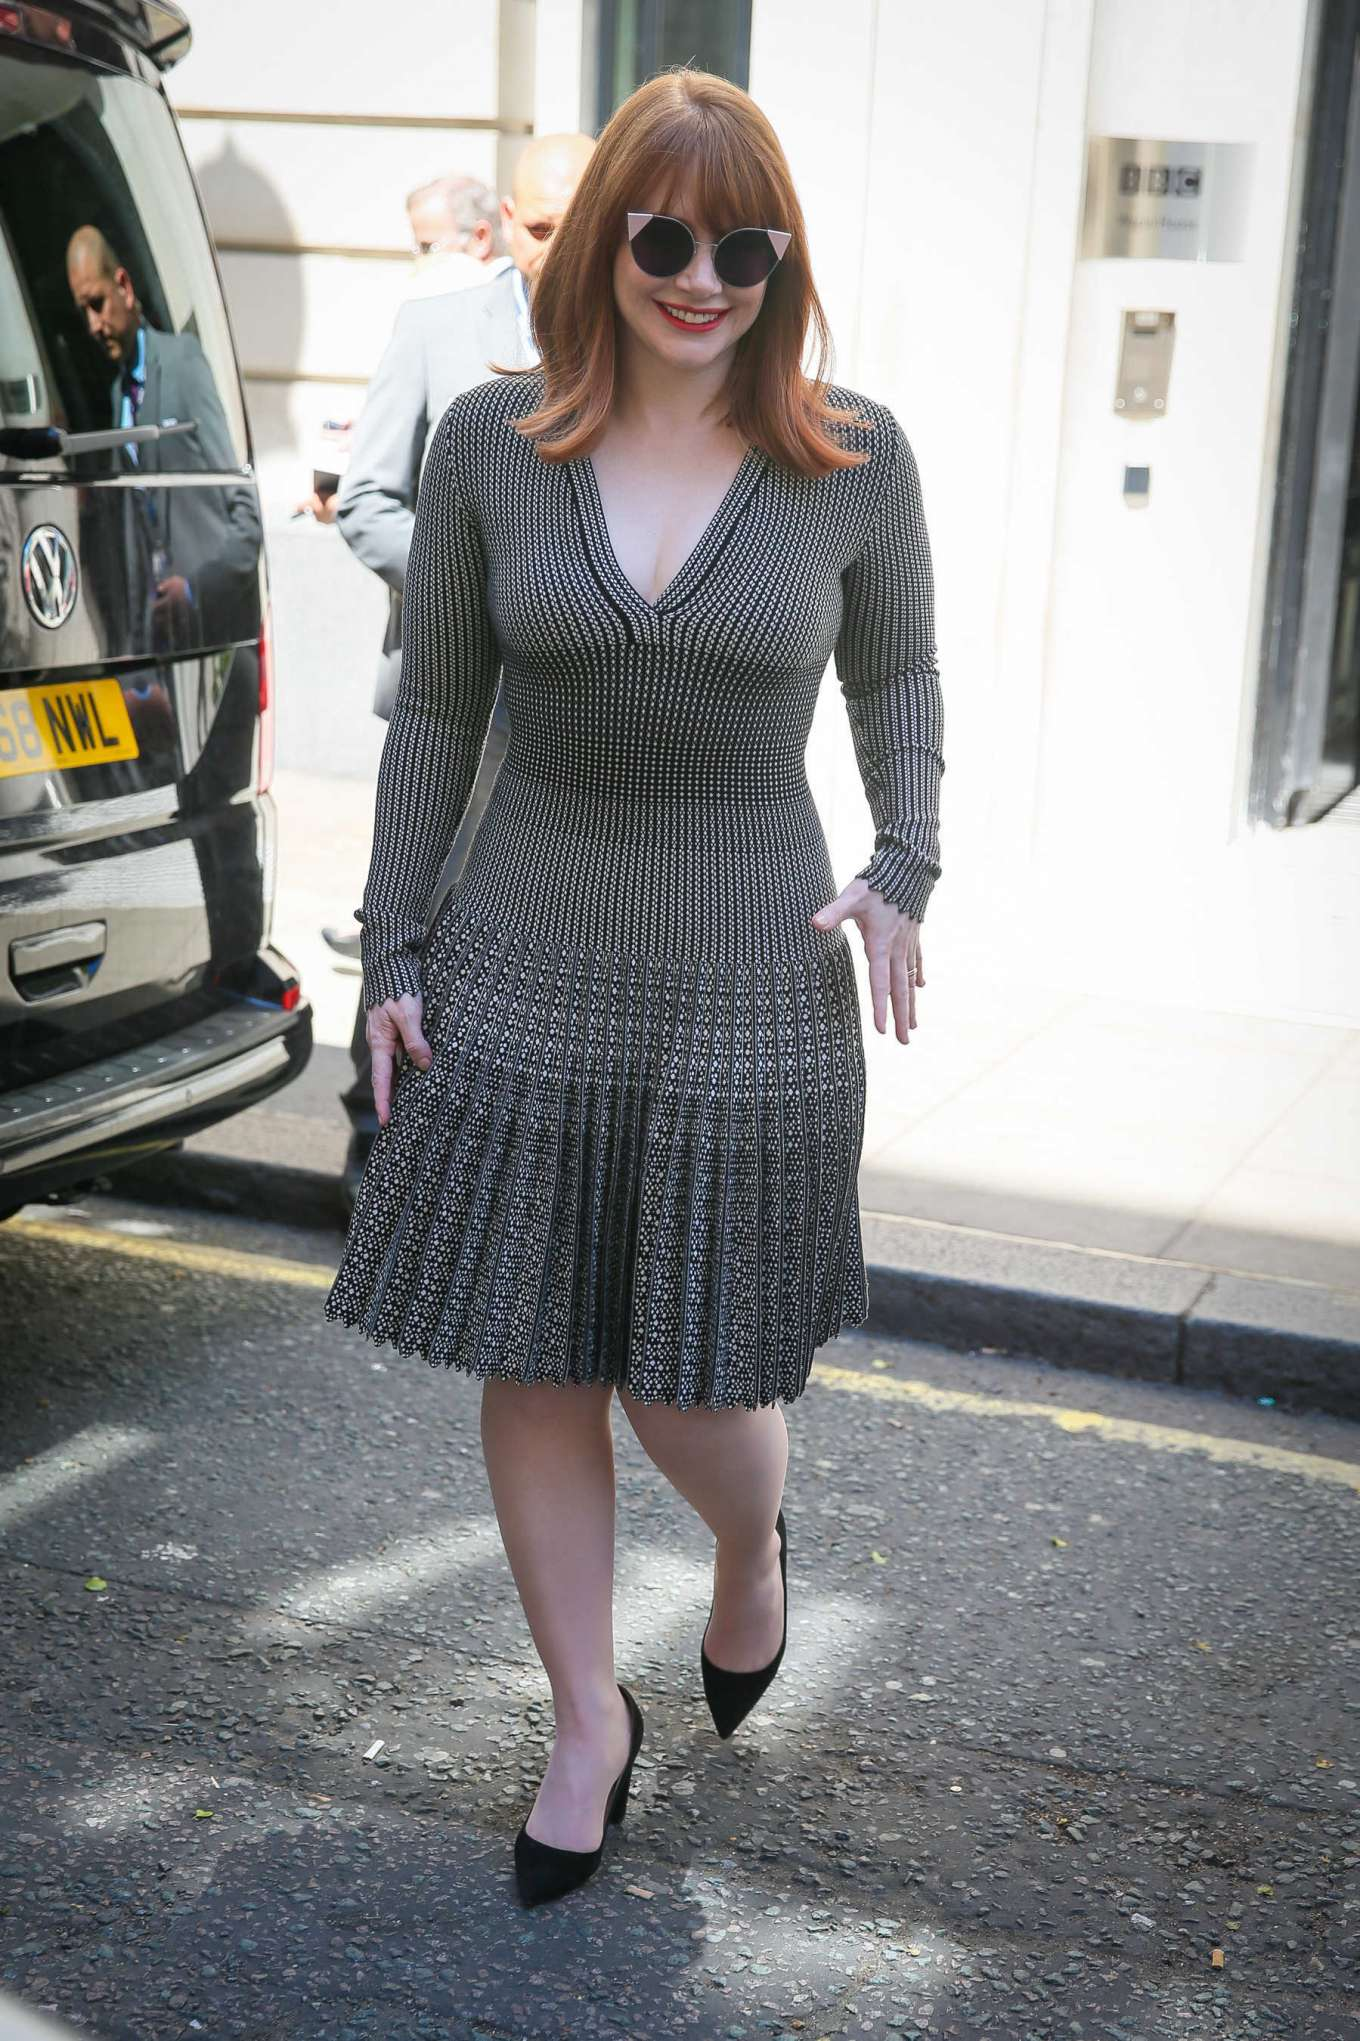 Bryce Dallas Howard 2019 : Bryce Dallas Howard: Out and about in London-03